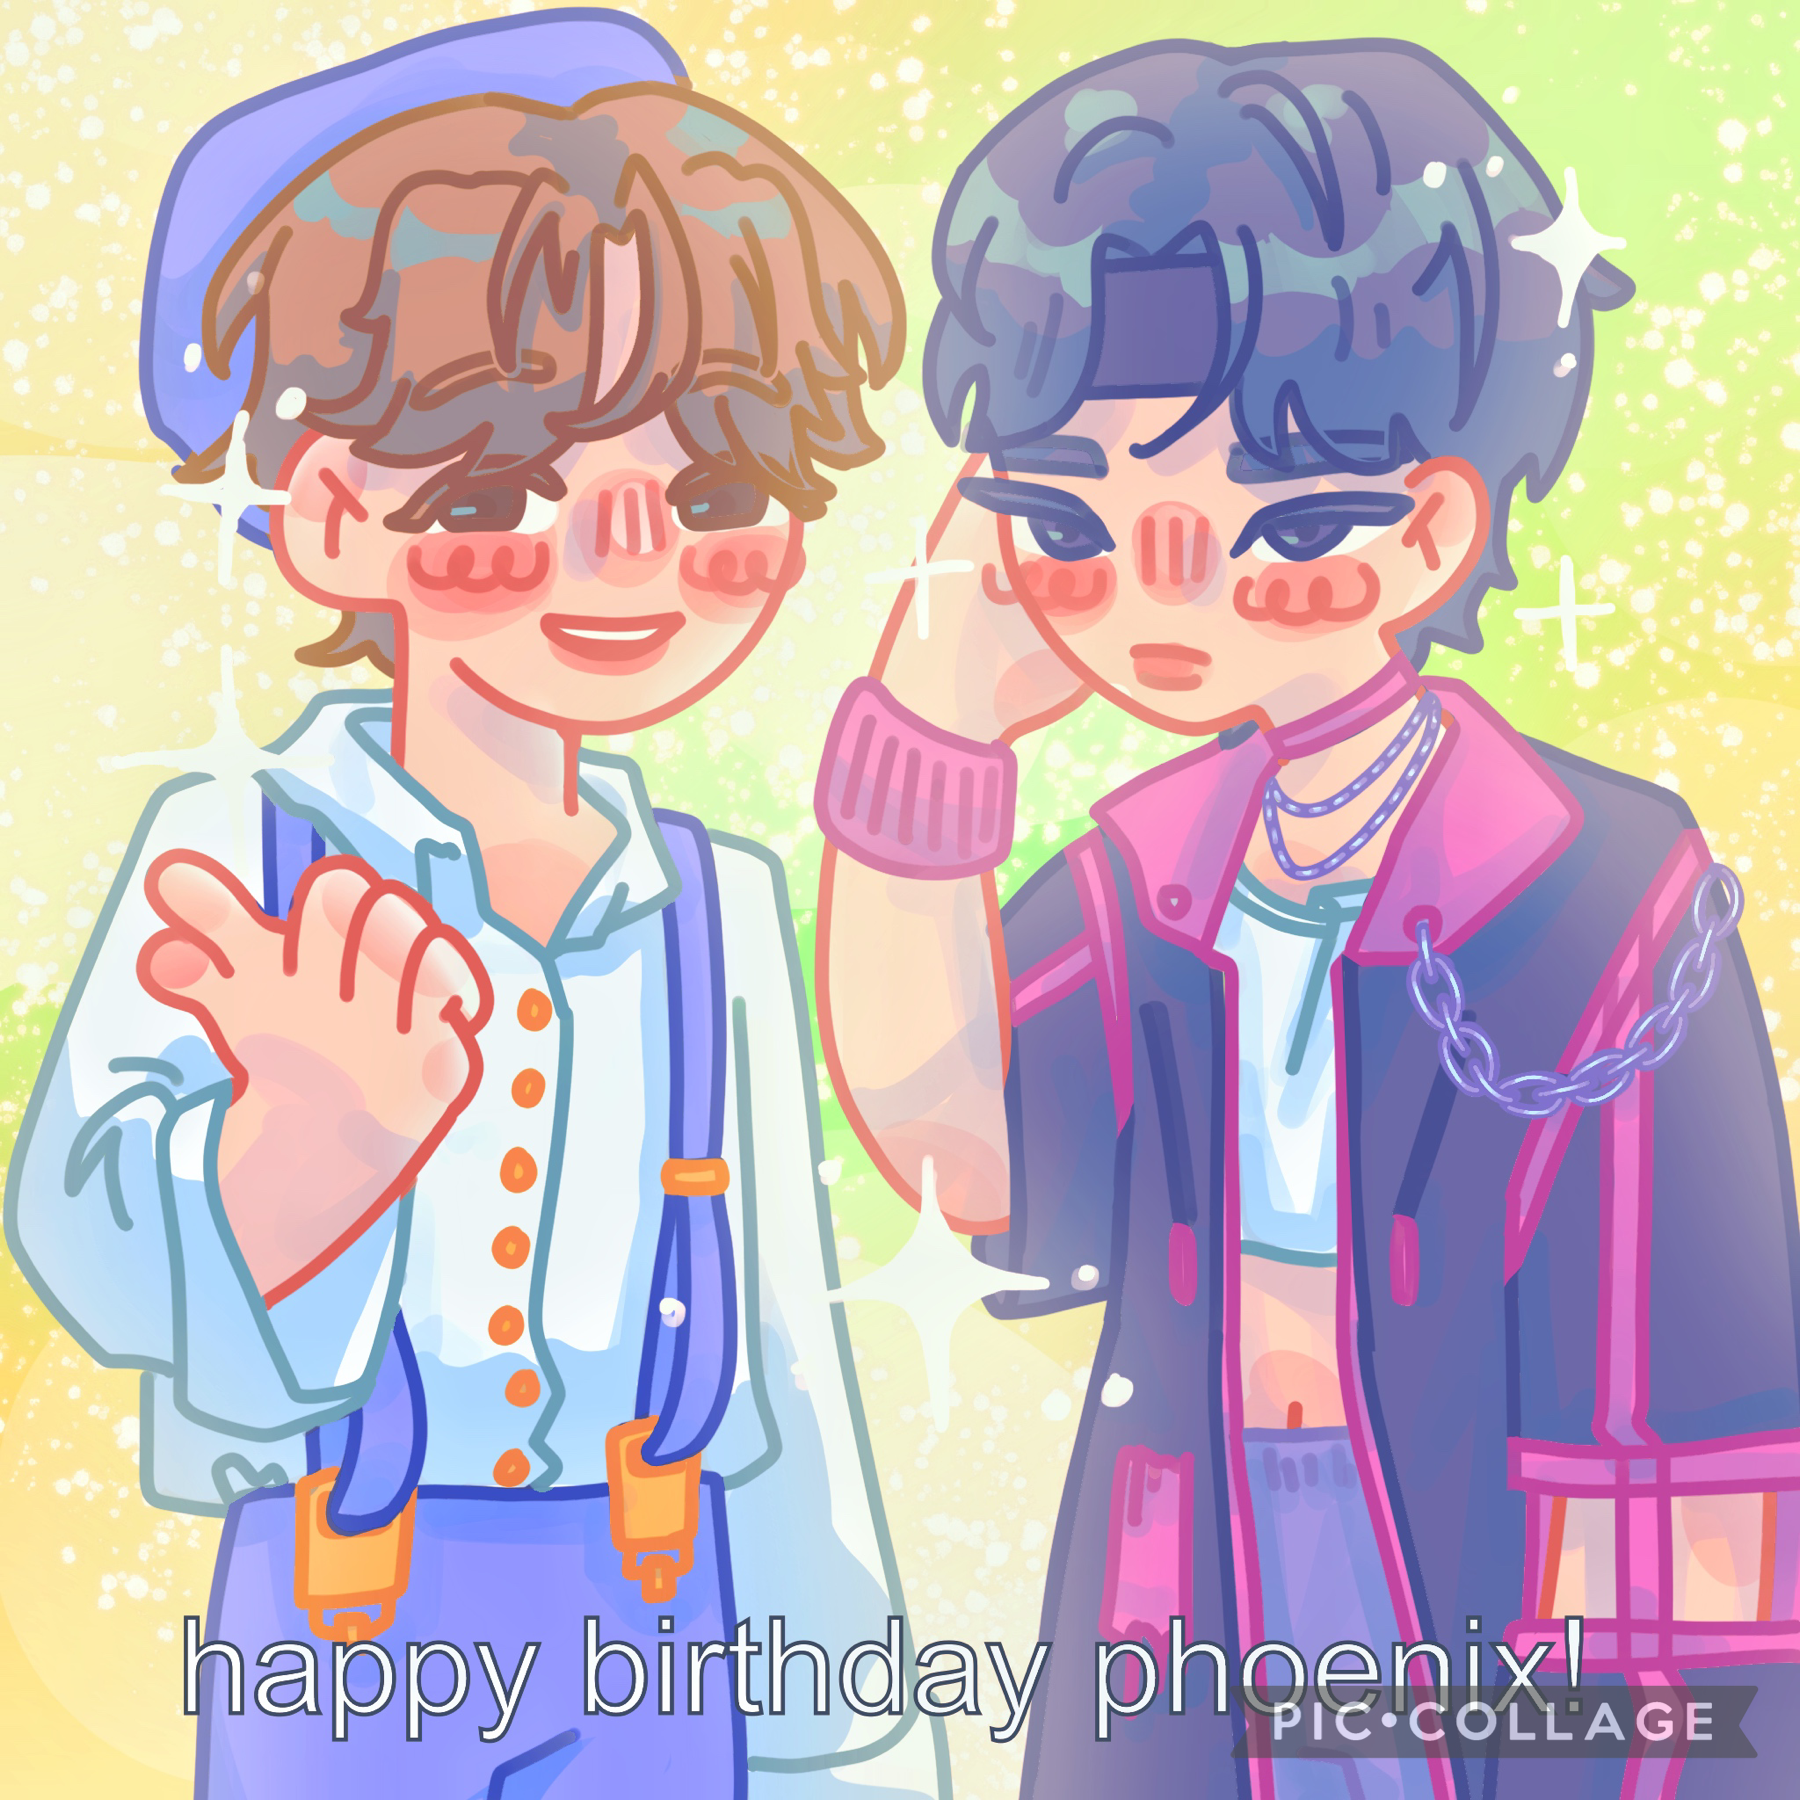 Something i made for my friends bday it's supposed to be some kpop ppl whose names I cannot rmb also sorry still no time to comment and reply and things